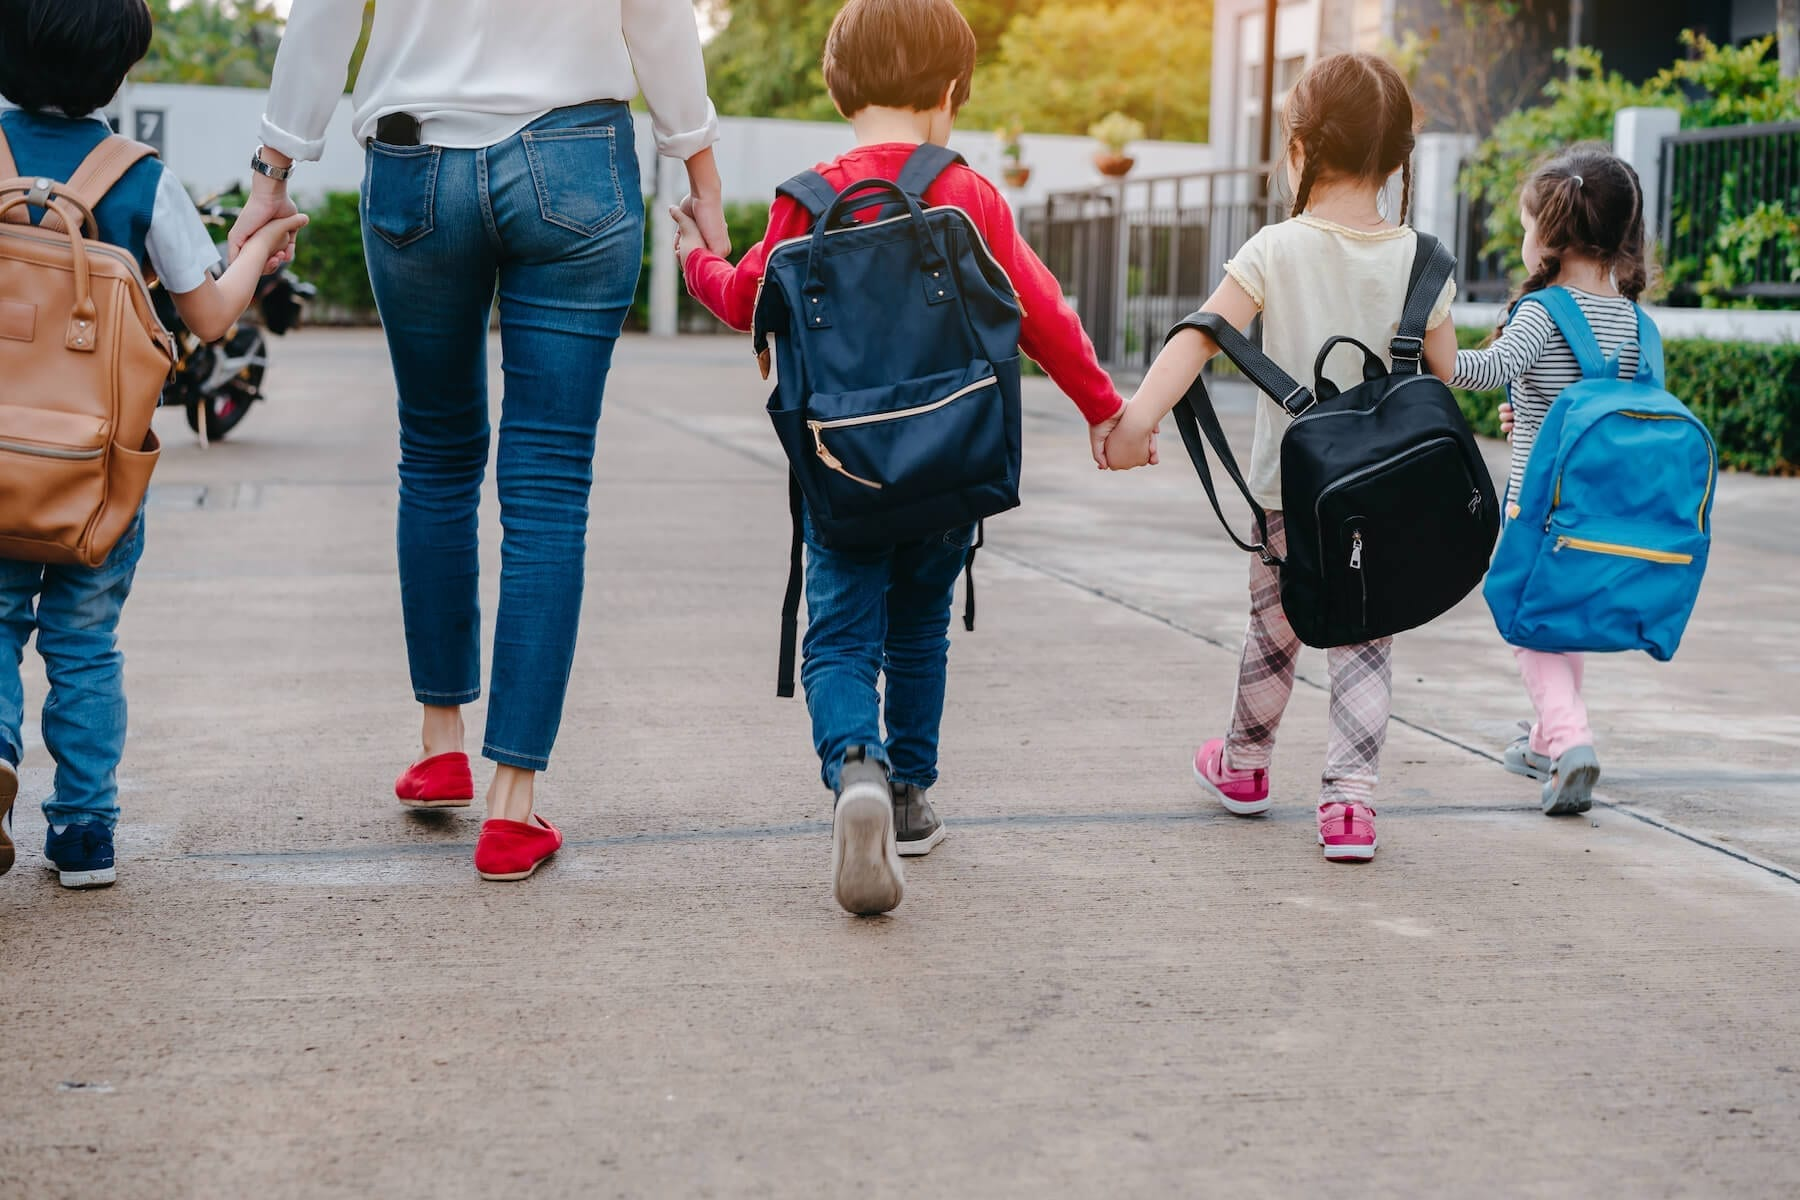 Can You Have a Non-Driving Nanny in the NYC Suburbs?